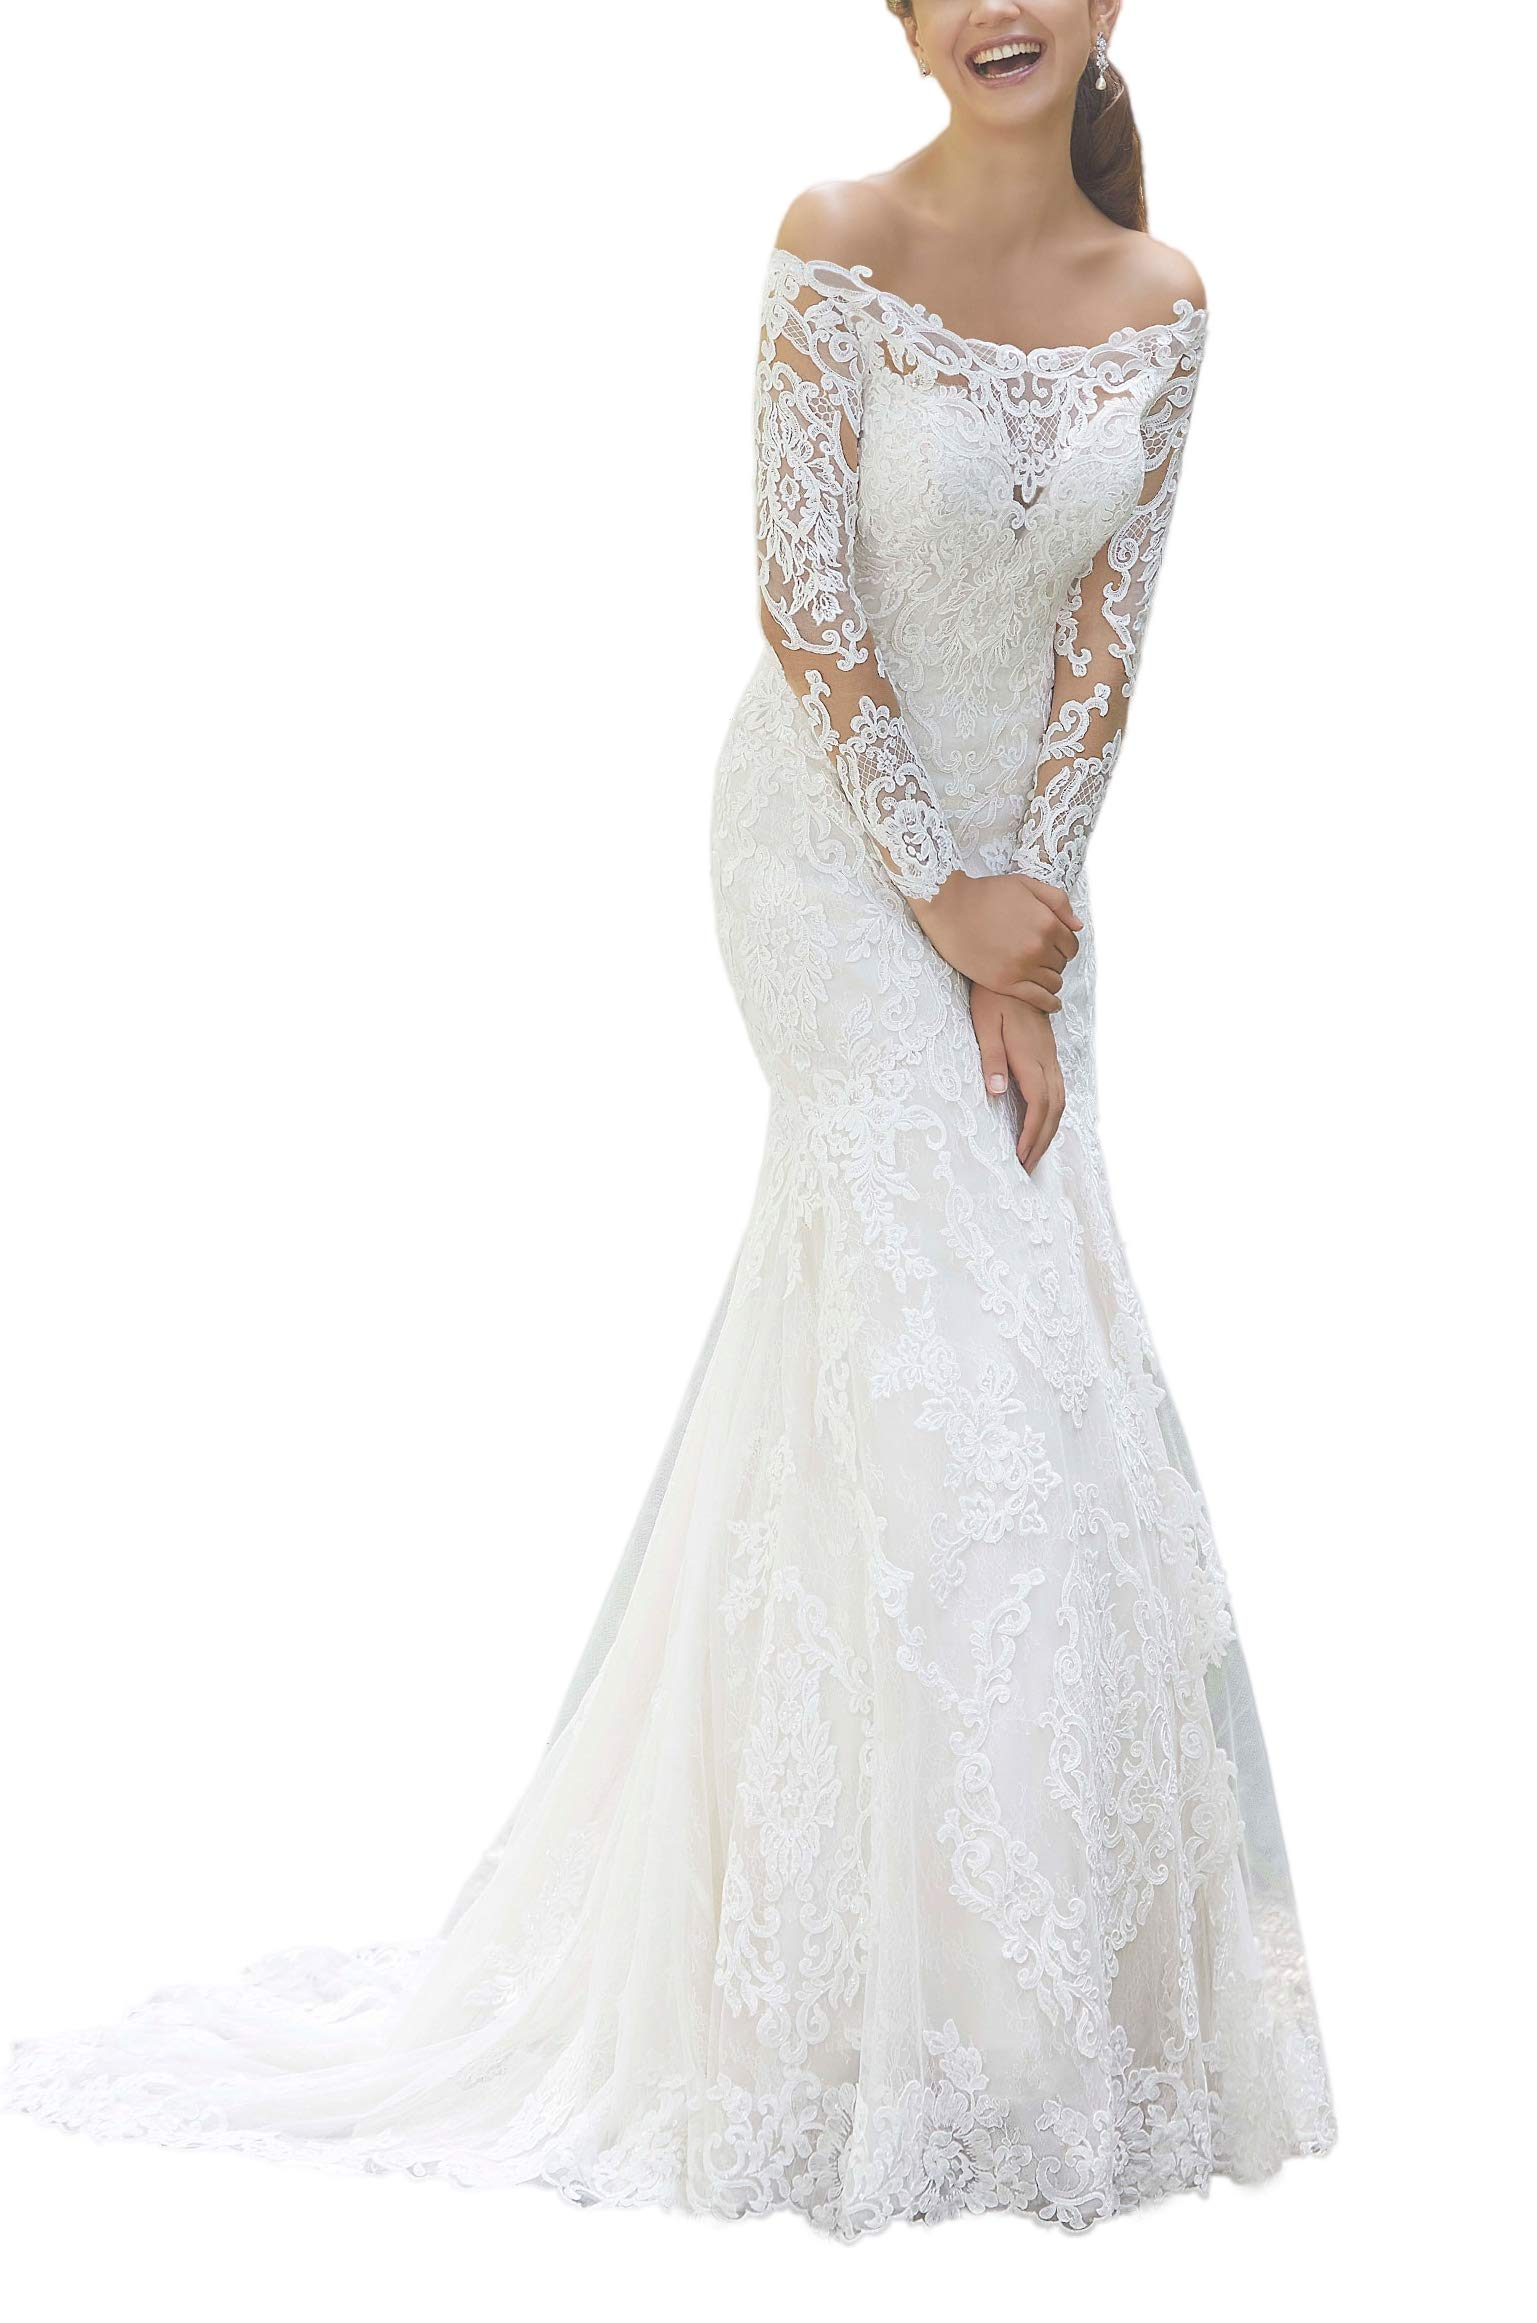 Mythlove Women S Wedding Dress Long Sleeves Sheer Train With Scalloped Hemline Fit And Flare Lace Bridal Gowns